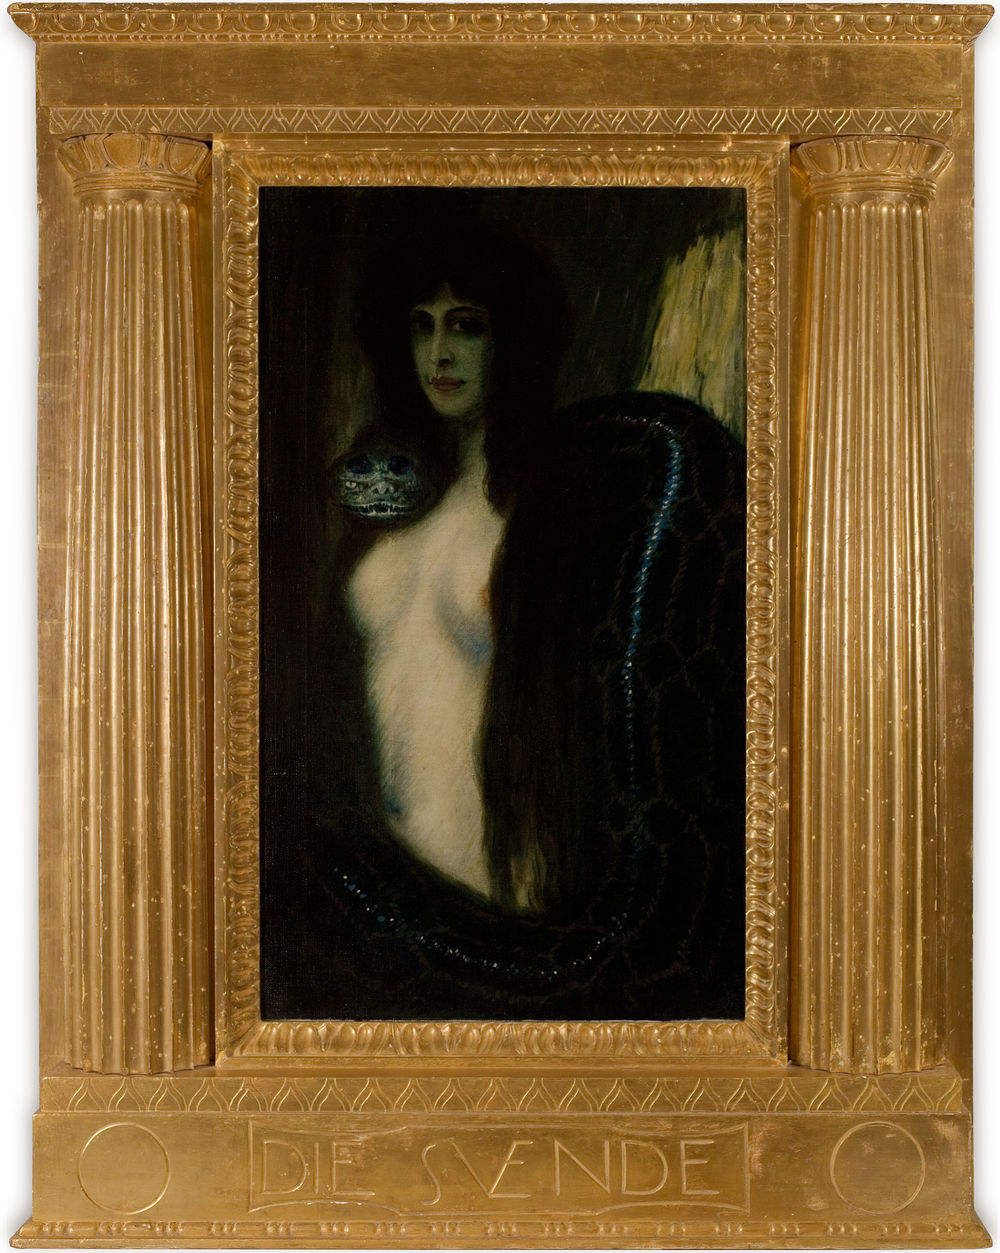 Franz von Stuck, The Sin, 1893. Collection F.W. Neess. Photo: Markus Bollen